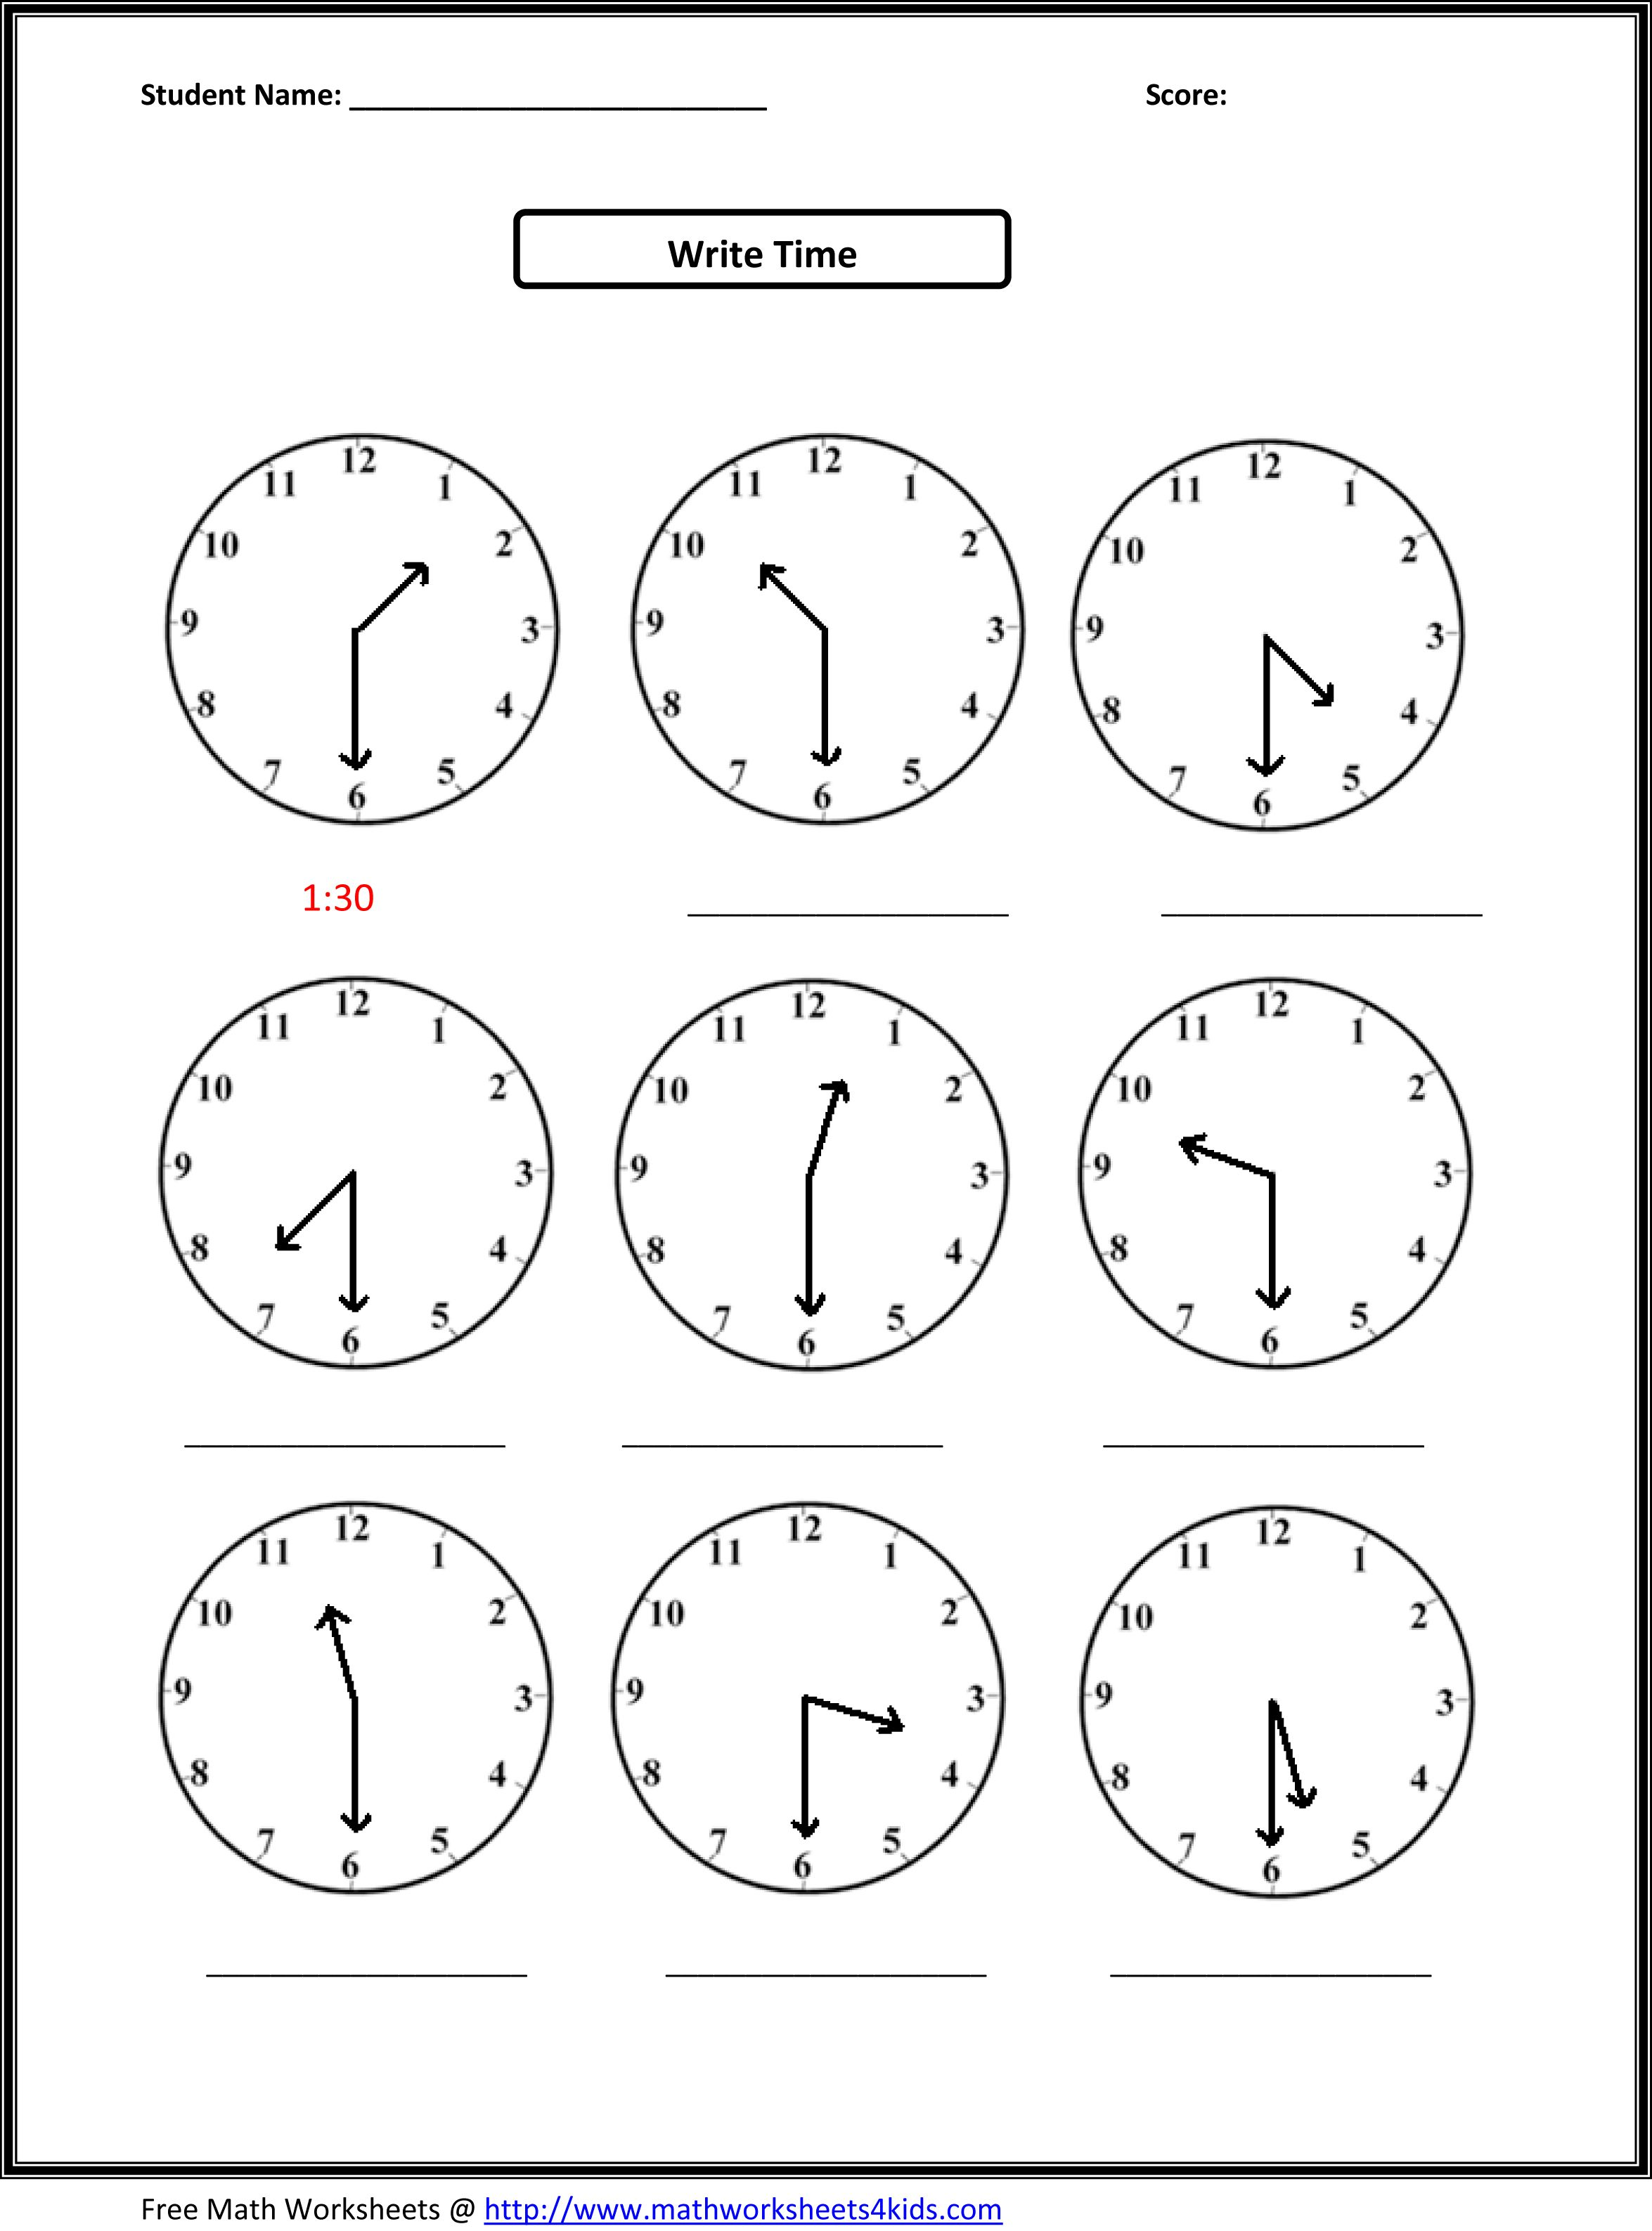 Weirdmailus  Remarkable Worksheet On Time For Grade   Reocurent With Foxy Free Printable Telling Time Worksheets Nd Grade  Reocurent With Nice Gallipoli Worksheets Also Area Rectangles Worksheet In Addition Math Worksheets Halloween And Ordering Fractions Worksheet Ks As Well As Place Value Review Worksheets Additionally Comprehension Worksheets Grade  Printable Free From Reocurentcom With Weirdmailus  Foxy Worksheet On Time For Grade   Reocurent With Nice Free Printable Telling Time Worksheets Nd Grade  Reocurent And Remarkable Gallipoli Worksheets Also Area Rectangles Worksheet In Addition Math Worksheets Halloween From Reocurentcom